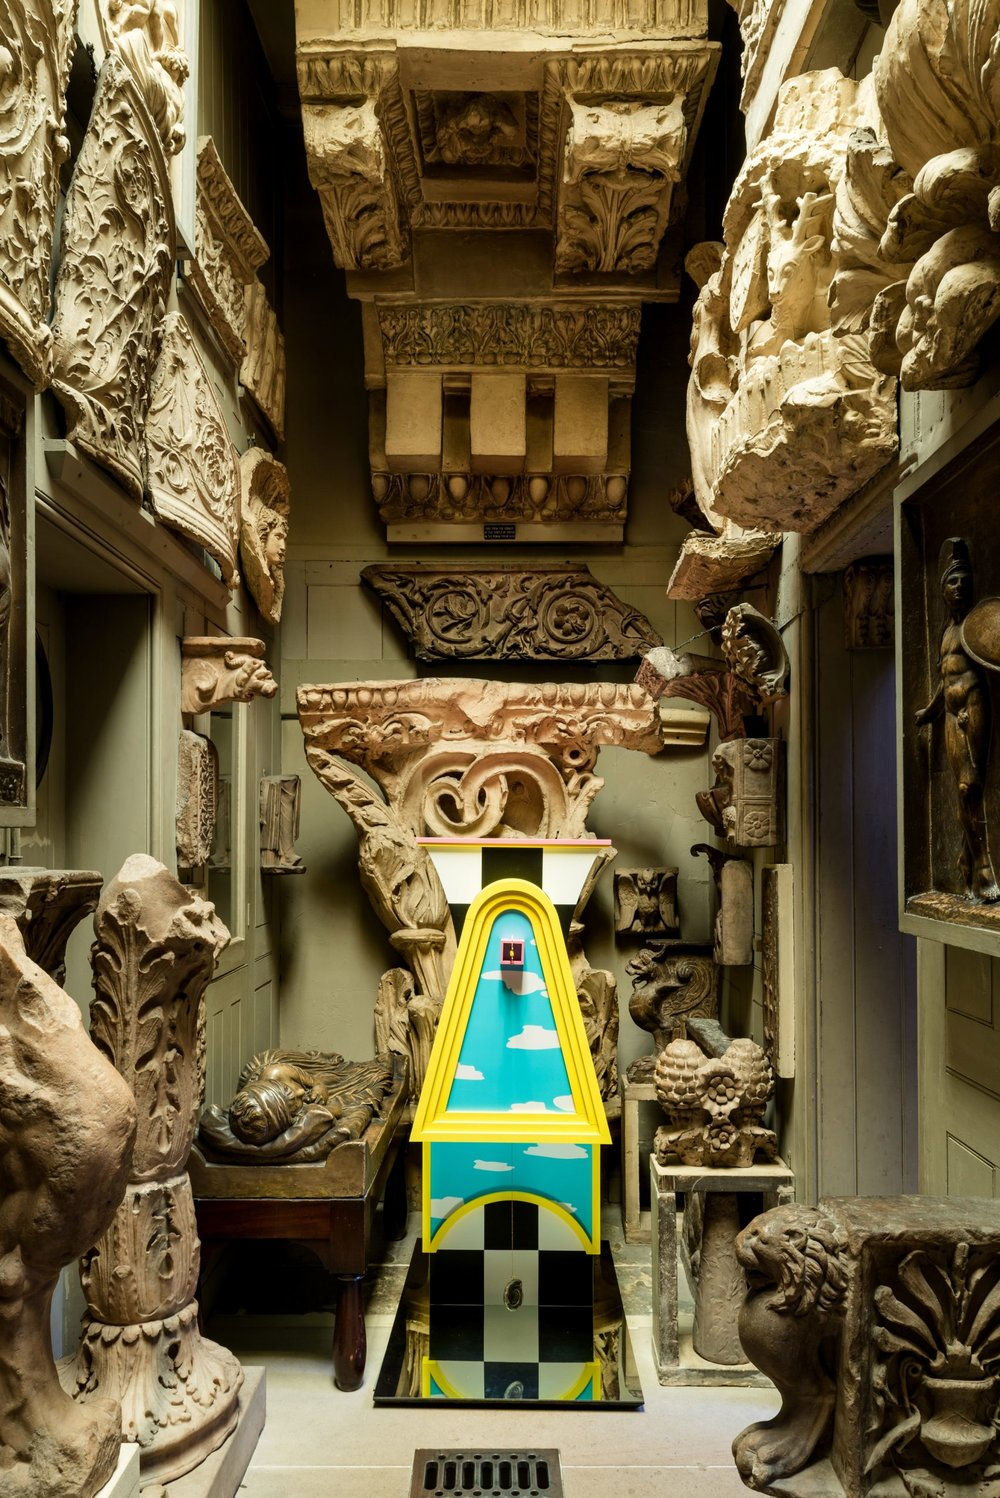 john-soane-architectural-characters-installation-london-uk_dezeen_2364_col_5-1704x2553.jpg